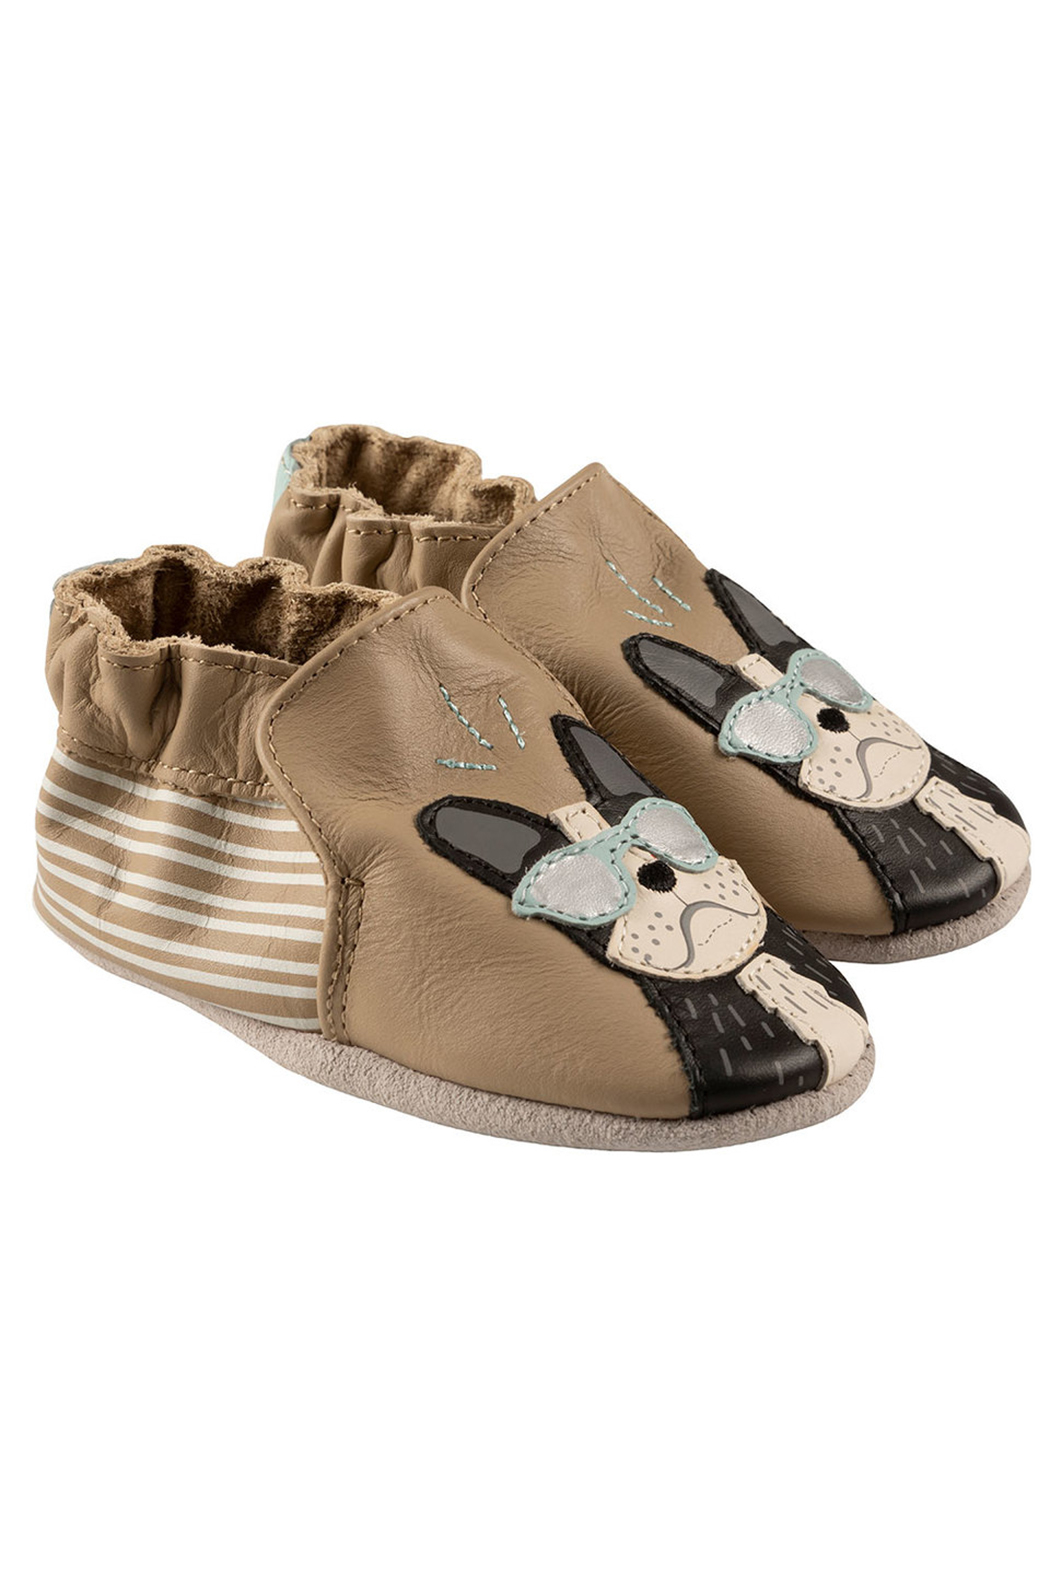 Robeez Vitto Soft Soles Baby Shoes - Front Cropped Image